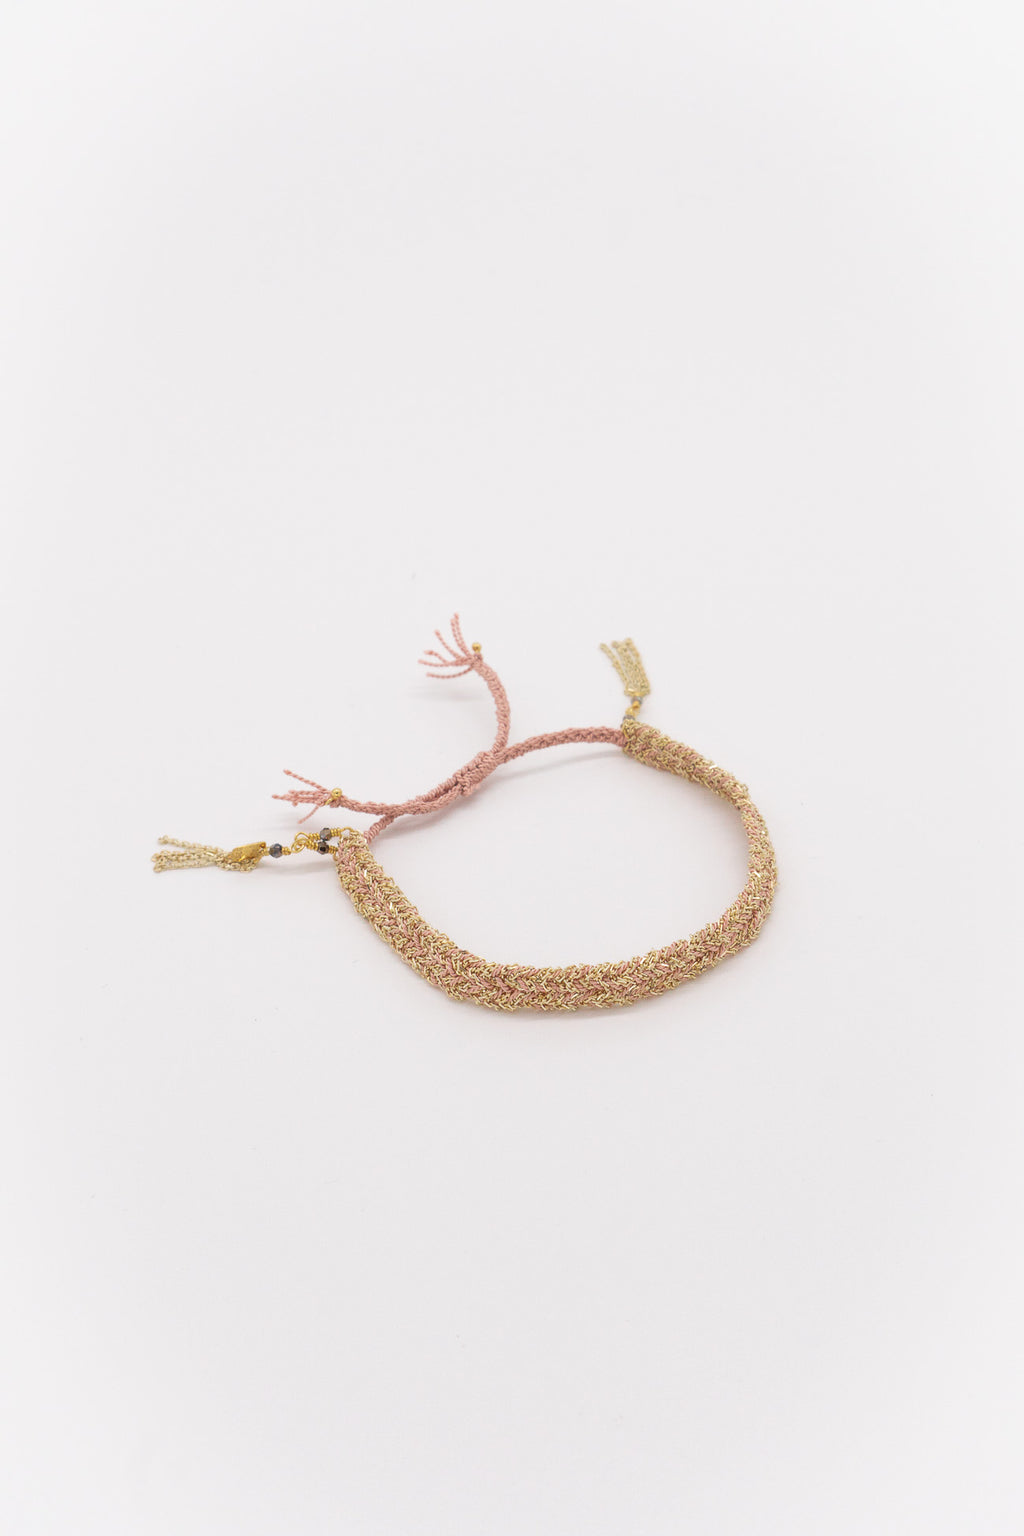 Marie Laure Chamorel Plaited Bracelet in Gold Nude